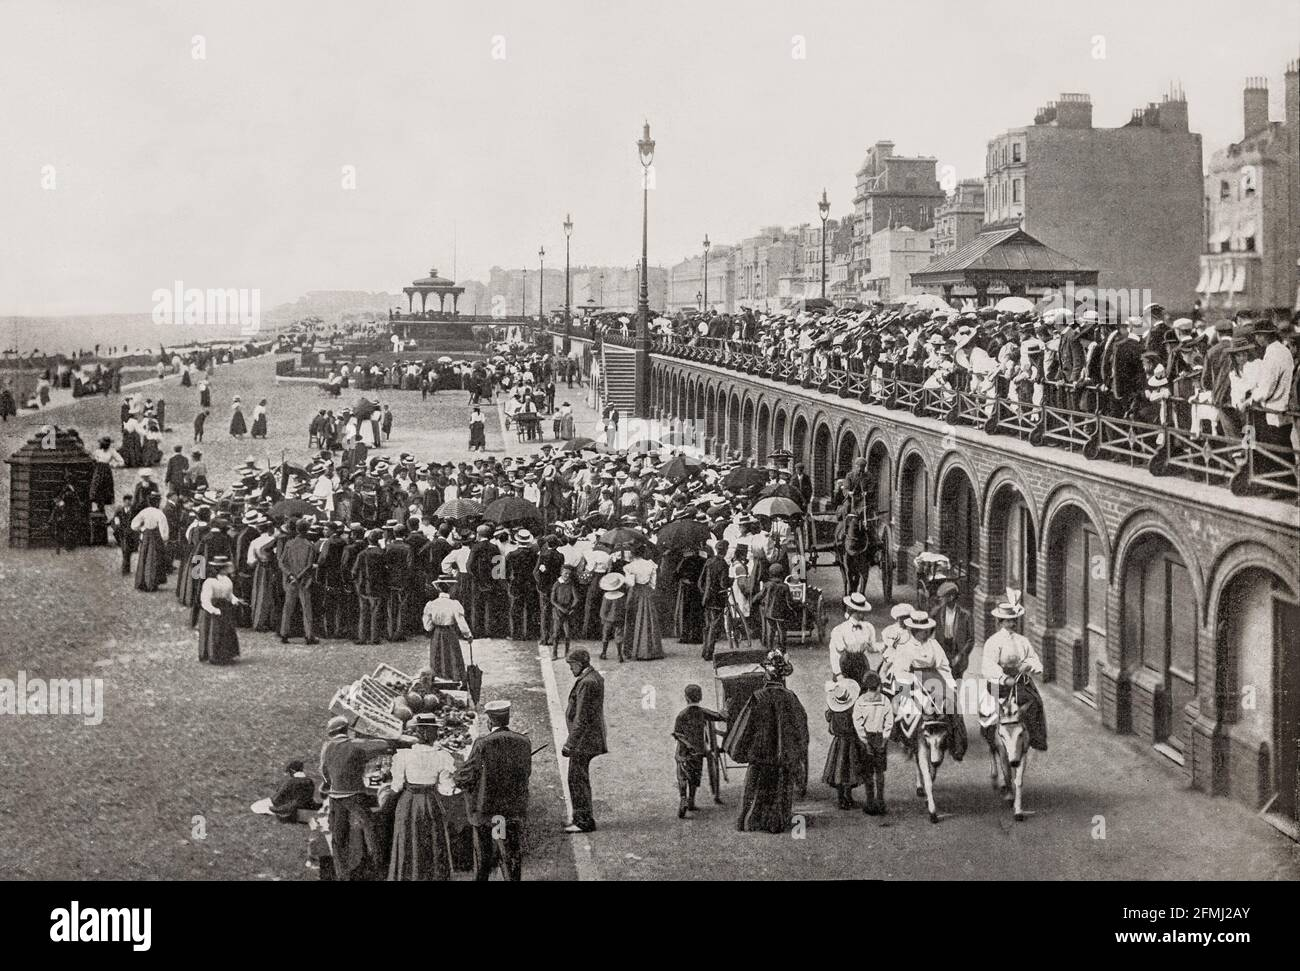 A late 19th Century view of the seafront at Brighton in East Sussex, England. King George IV spent much time in the town and constructed the Royal Pavilion there. The arrival of the London and Brighton Railway in 1841 brought Brighton within the reach of day-trippers from London. Many of the major attractions were built during the Victorian era, such as the Grand Hotel (1864), the West Pier (1866), and the Palace Pier (1899). Stock Photo